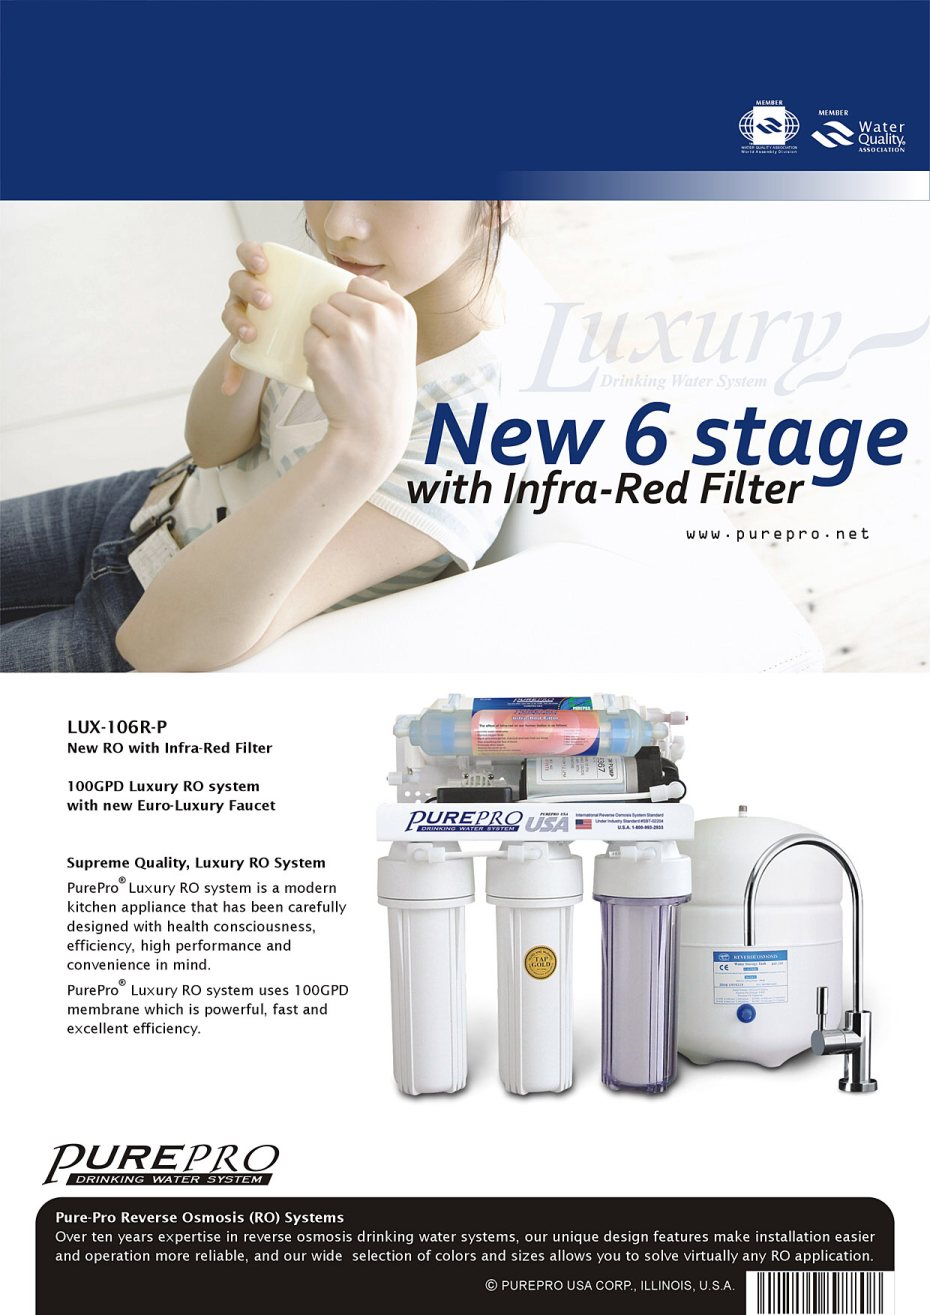 Purepro 174 Luxury Reverse Osmosis Water Filter Systems